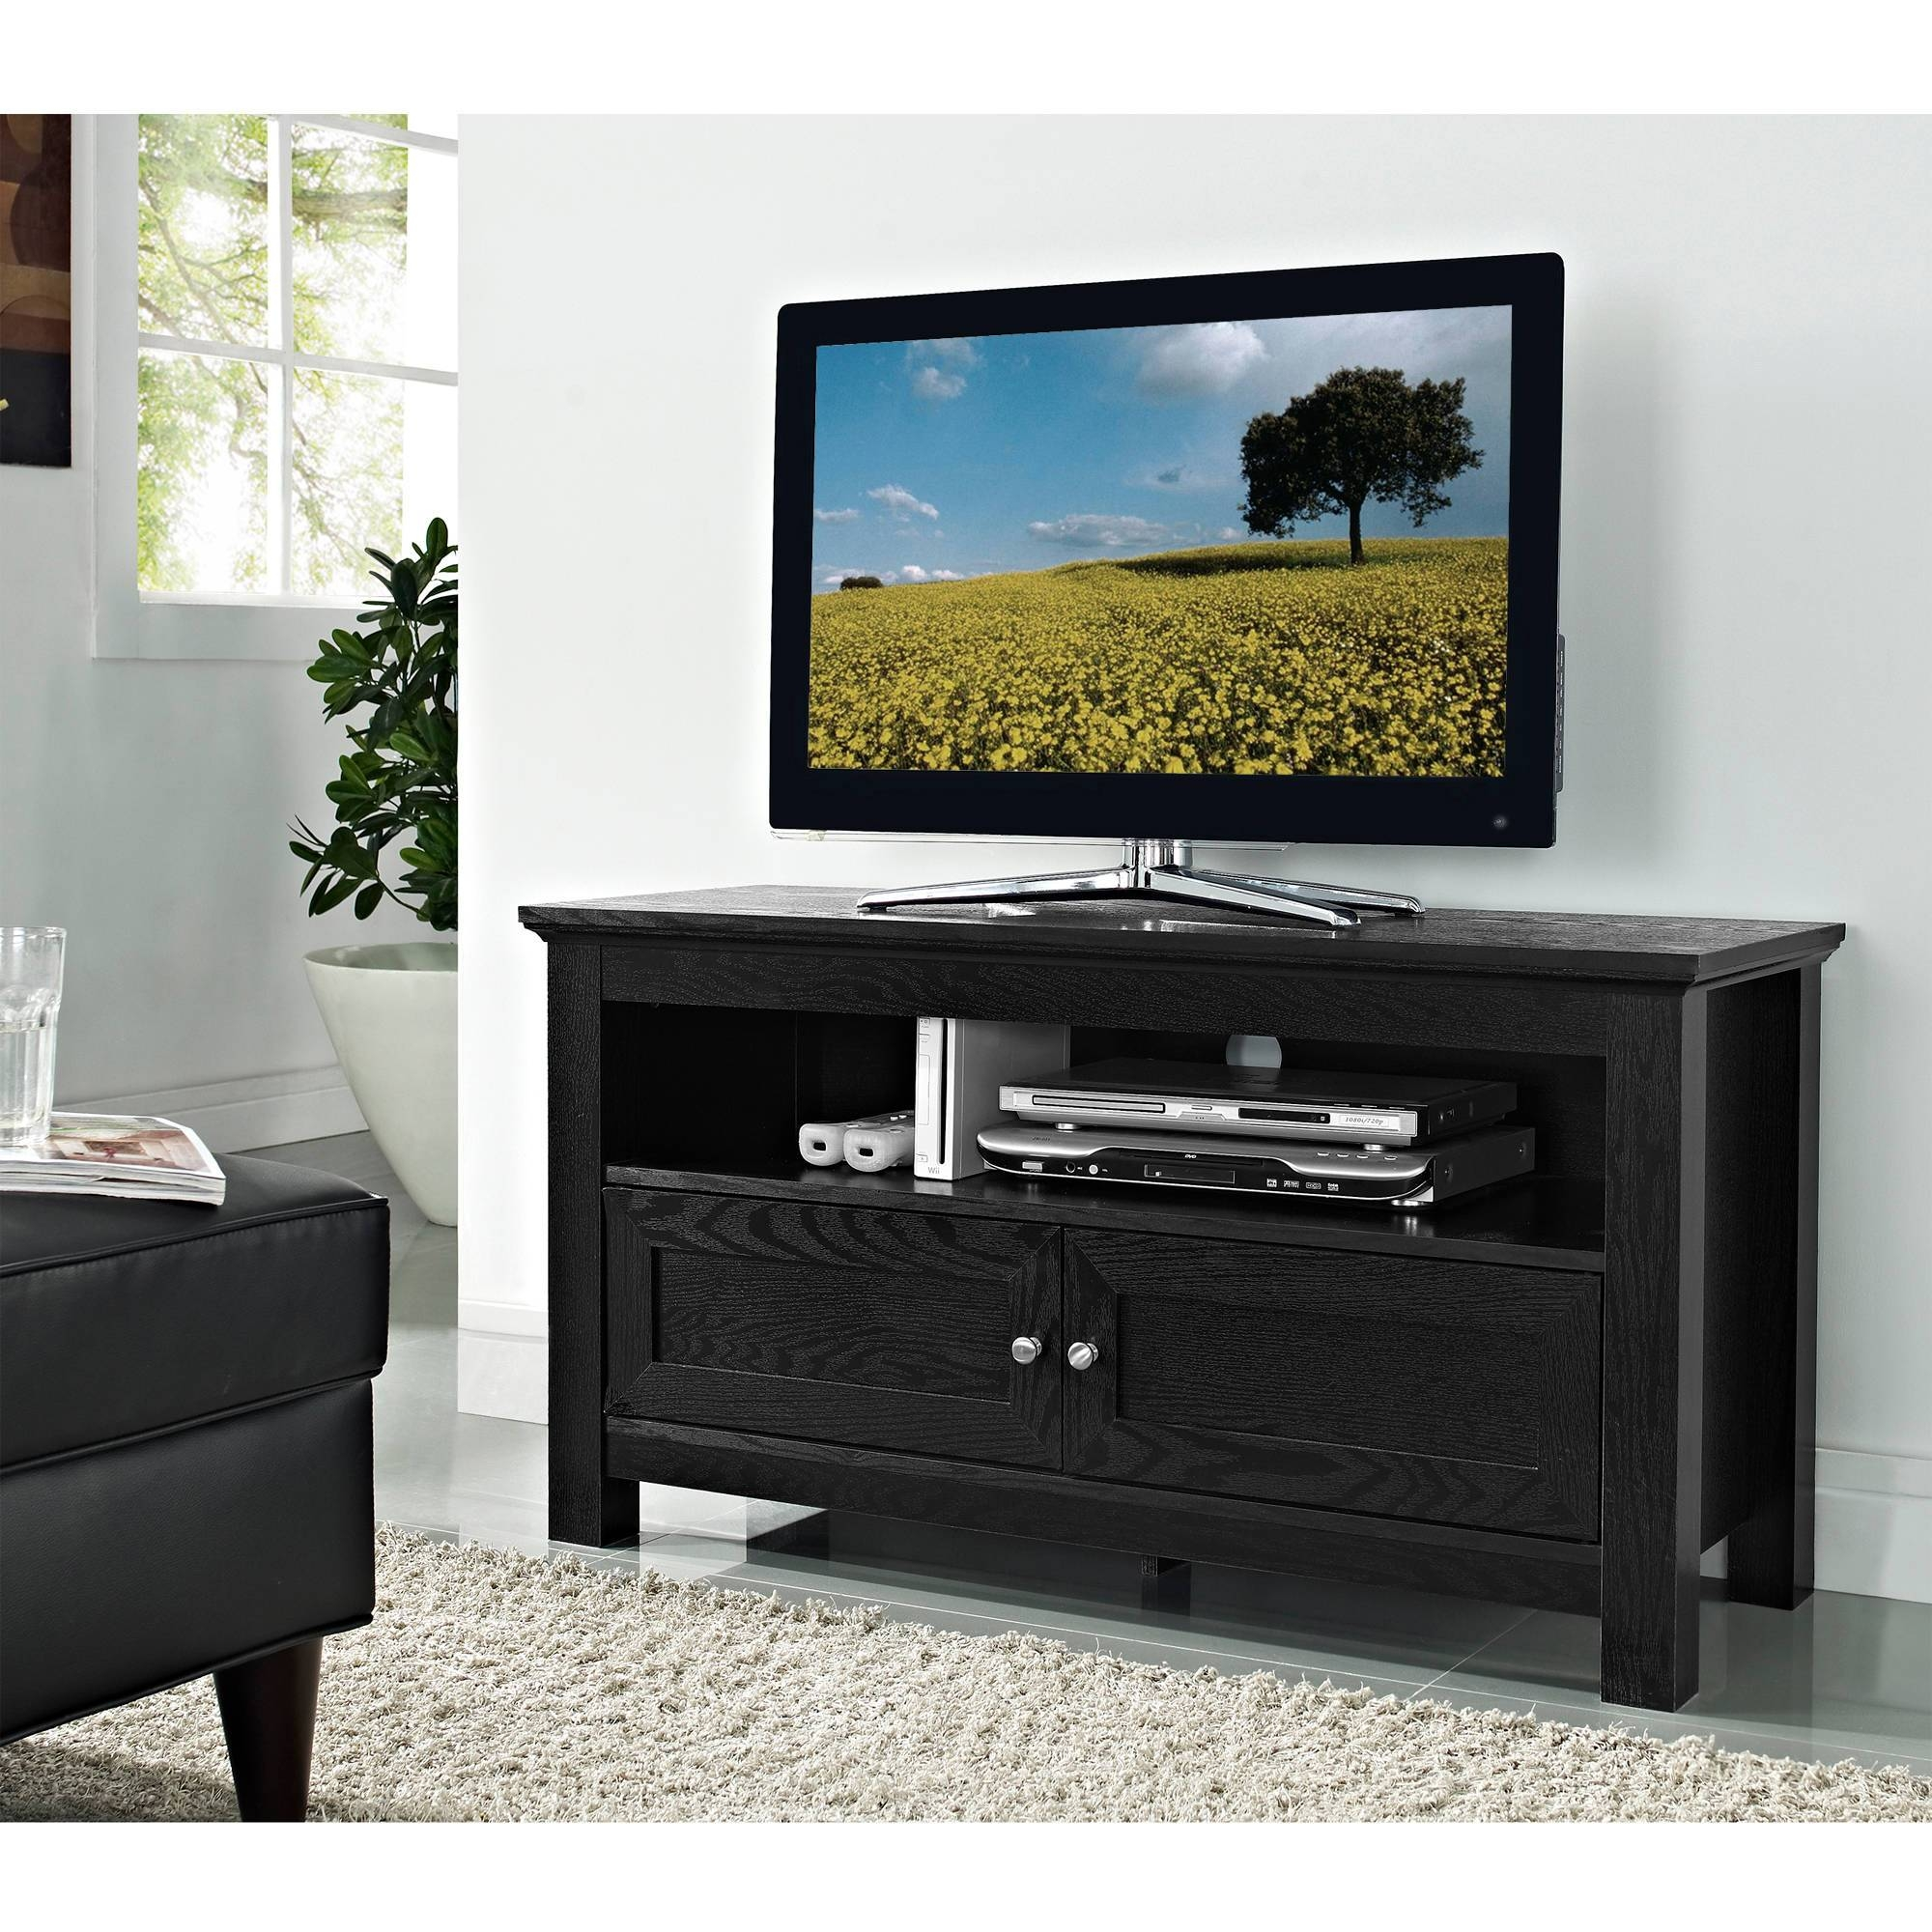 "Walker Edison Tv Stand For Tvs Up To 48"", Multiple Colors with regard to Tall Black Tv Cabinets (Image 15 of 15)"